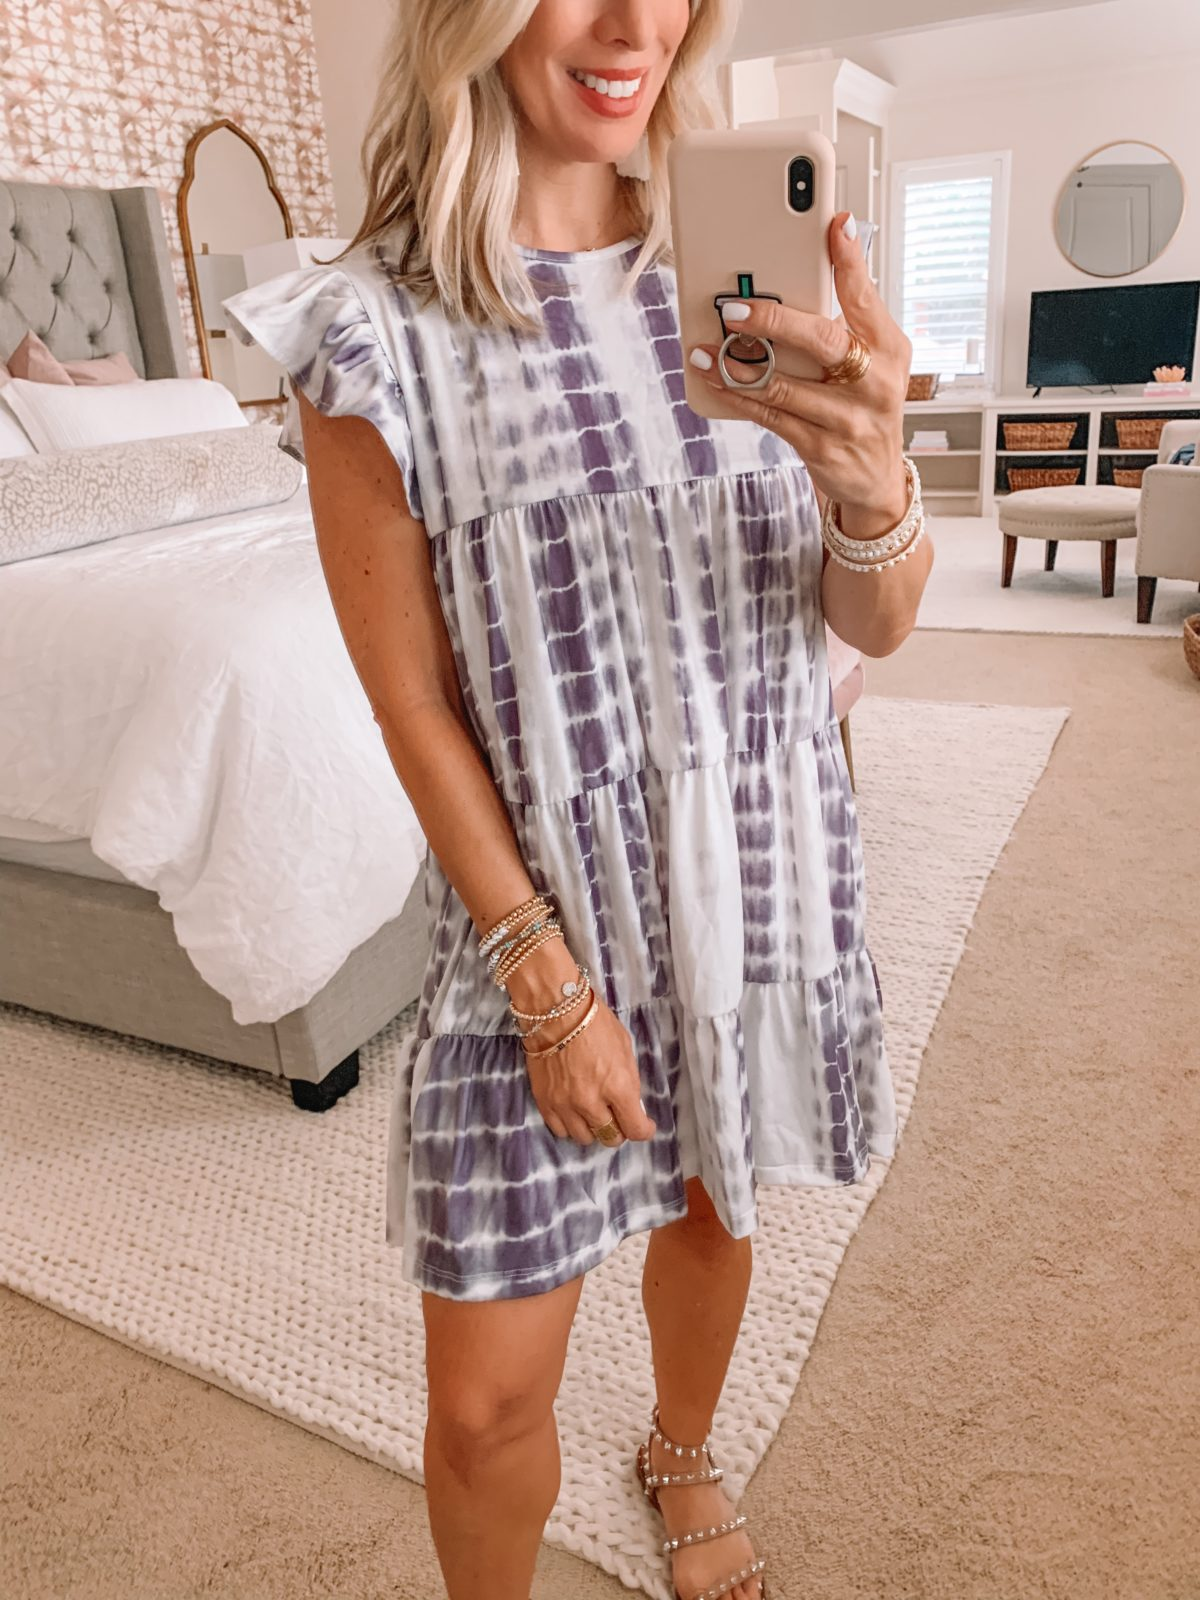 Amazon Fashion Finds, Tie Dye Tiered Dress, Studded Sandals